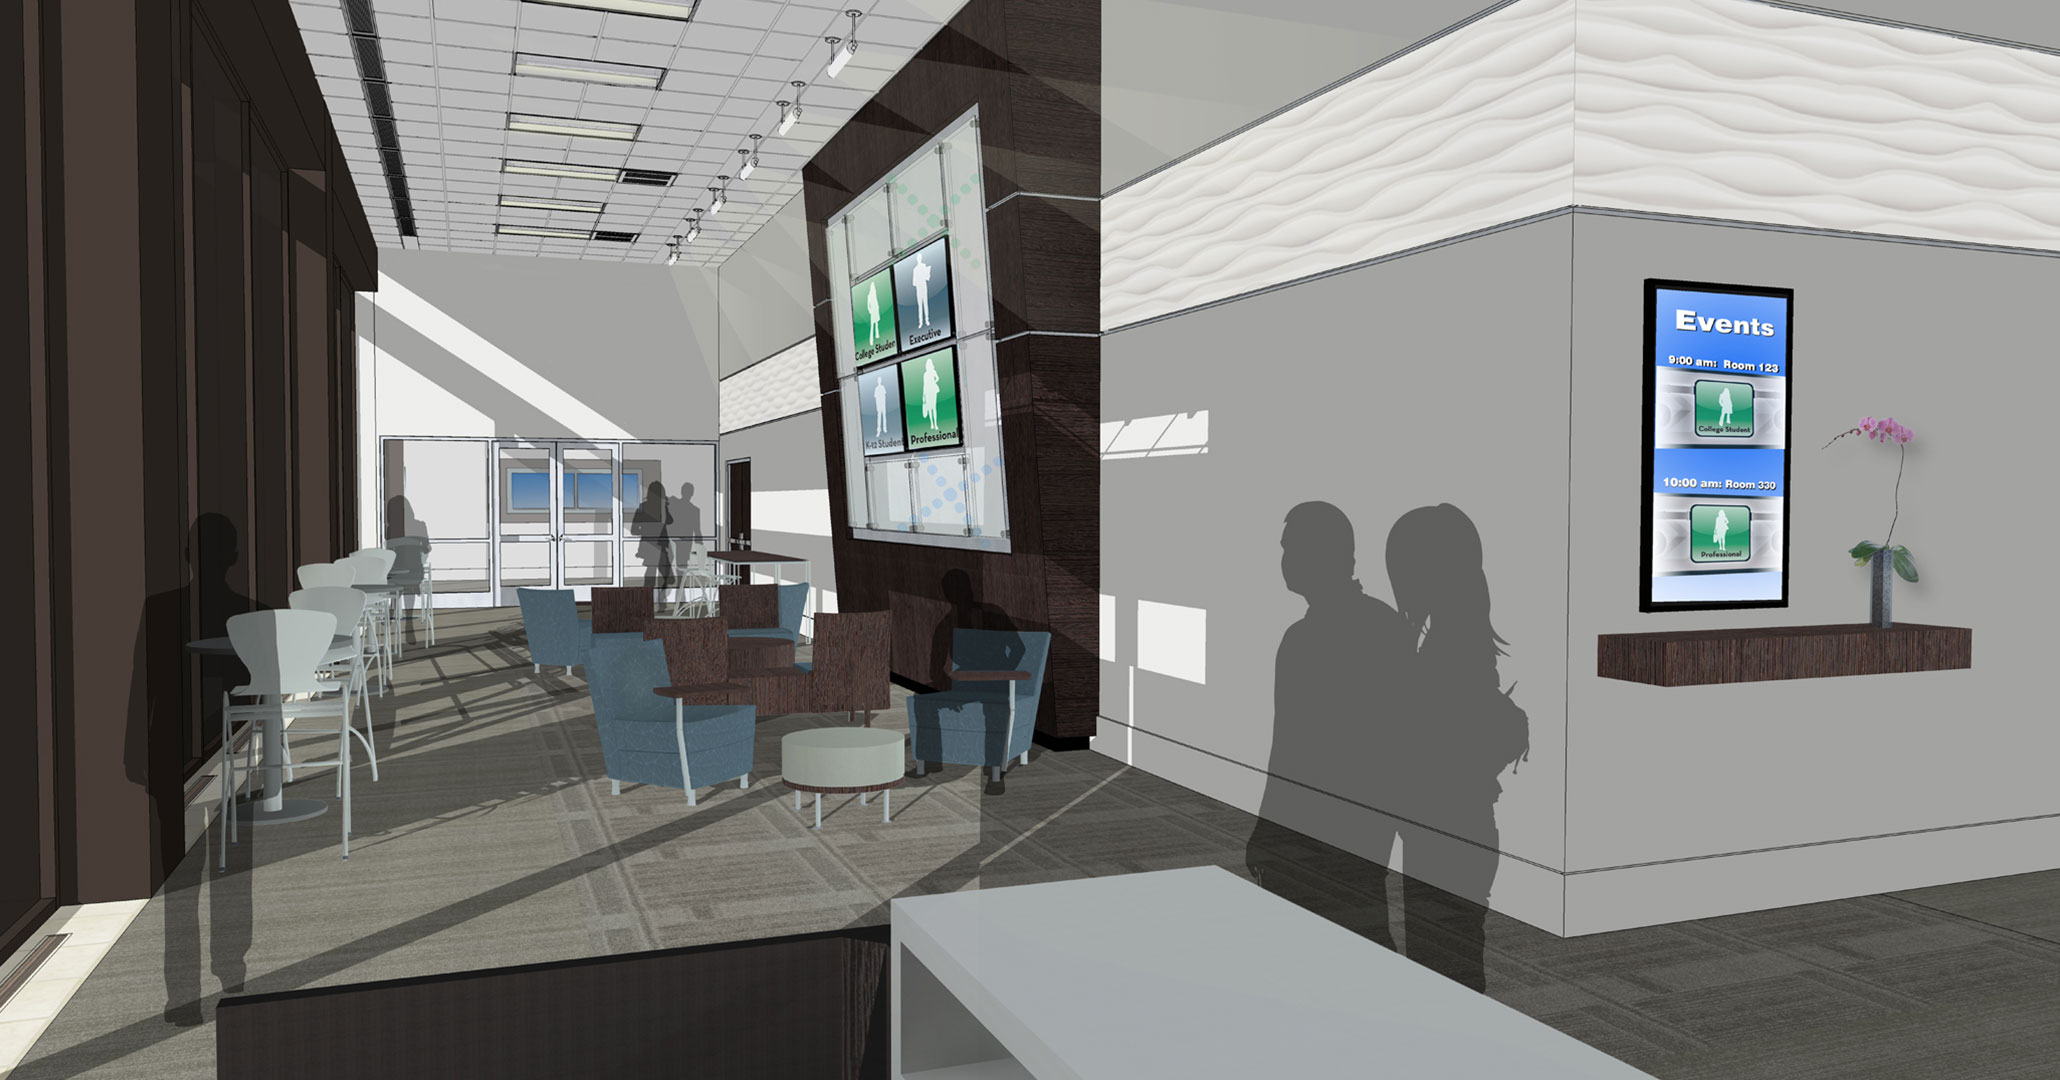 Boudreaux architects worked with the IT-ology to provide interior design and programming services for their new office space on Gervais Street, shown are renderings during the design phase.